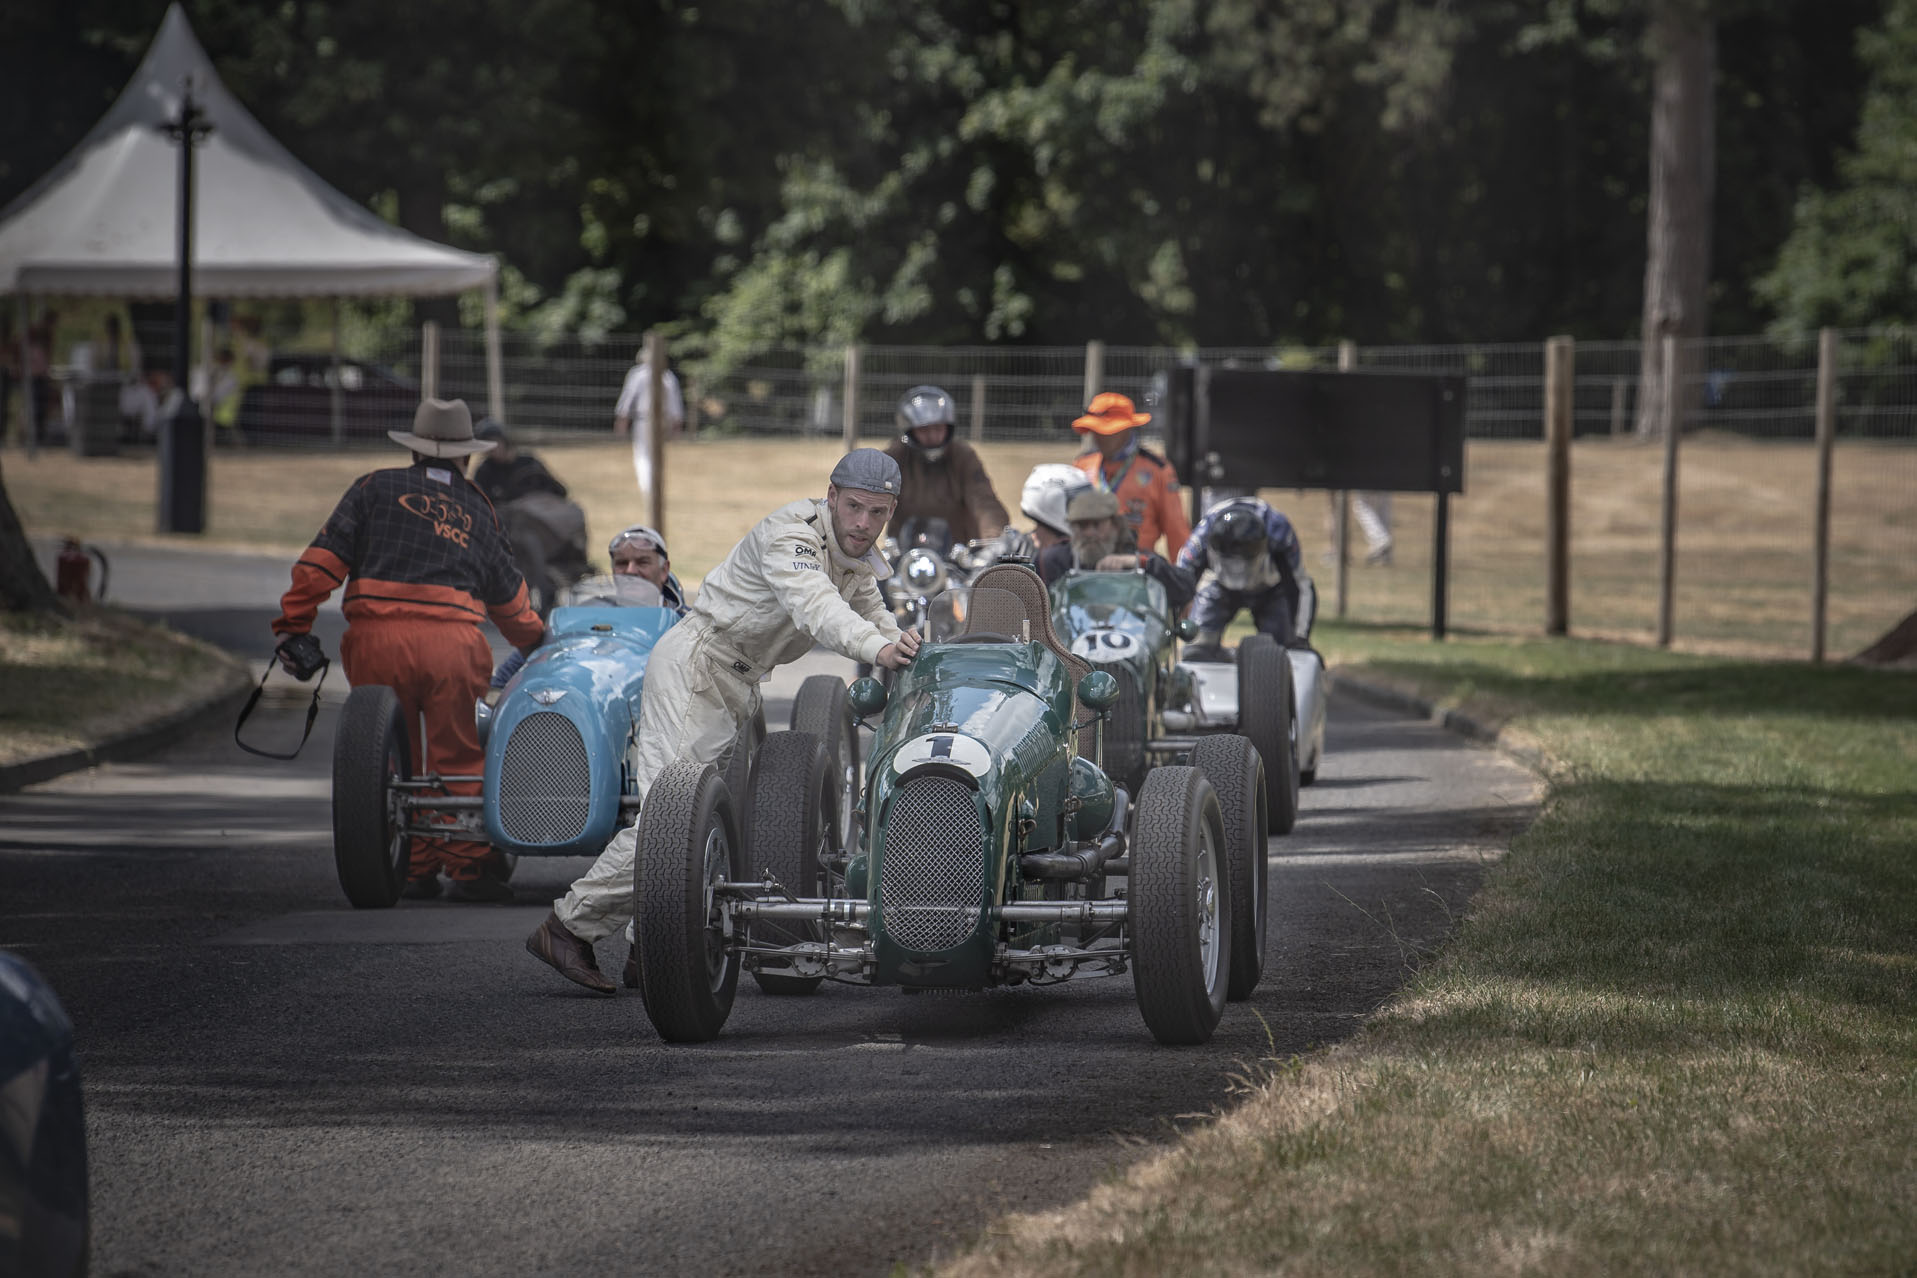 competition-racers-cihc.jpg